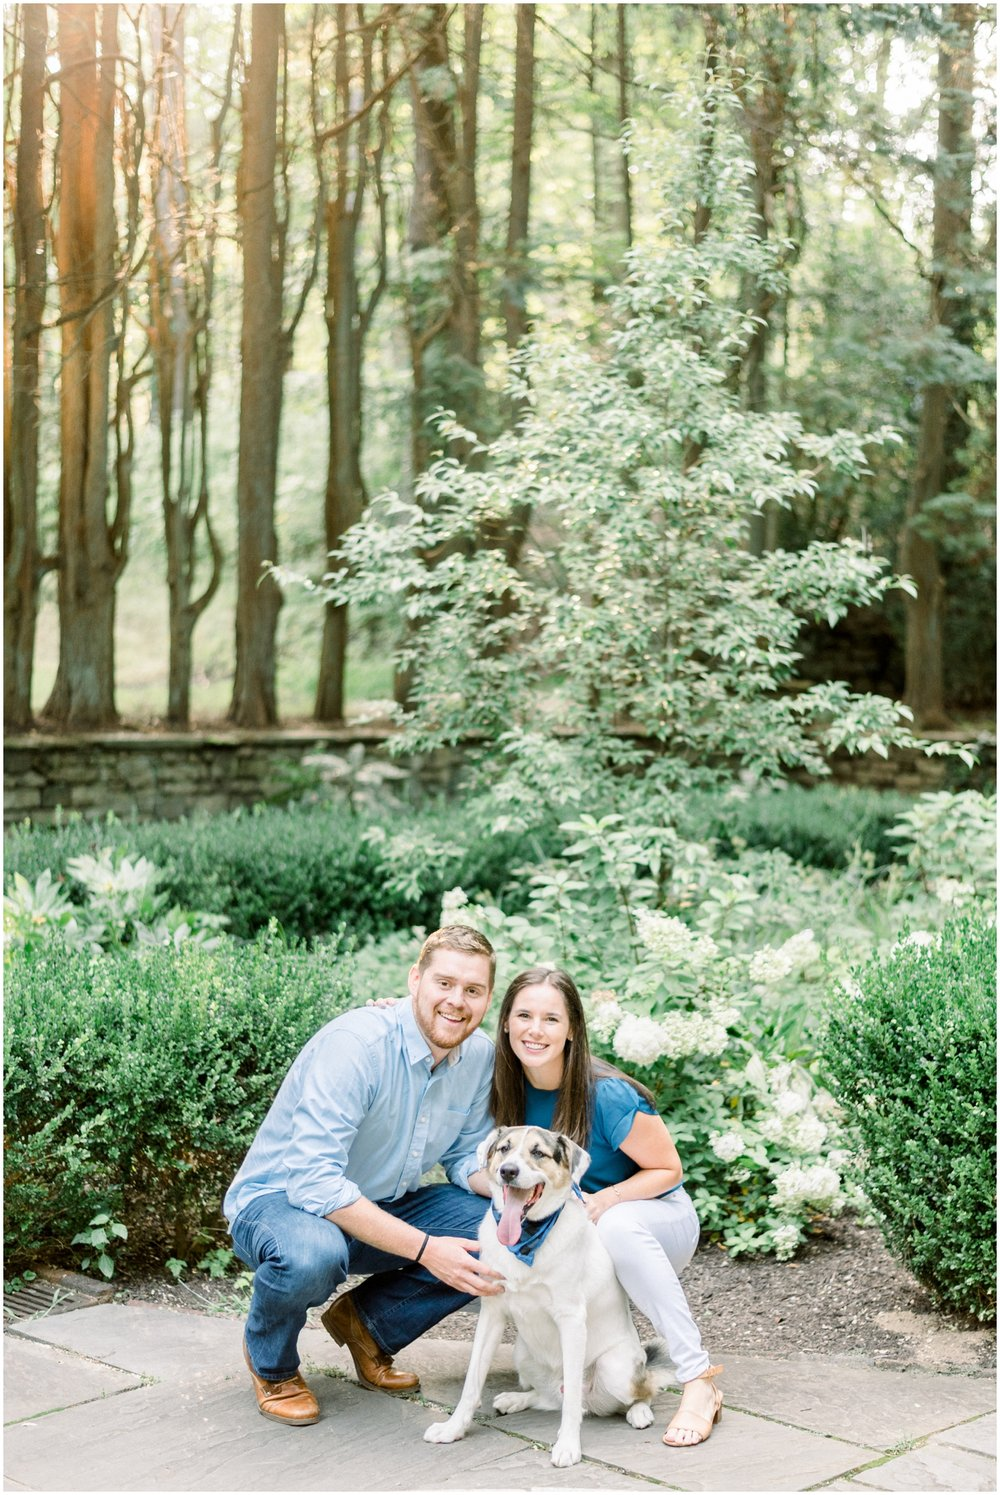 Summer Engagement Session at Hunting Hill Mansion - Krista Brackin Photography_0004.jpg